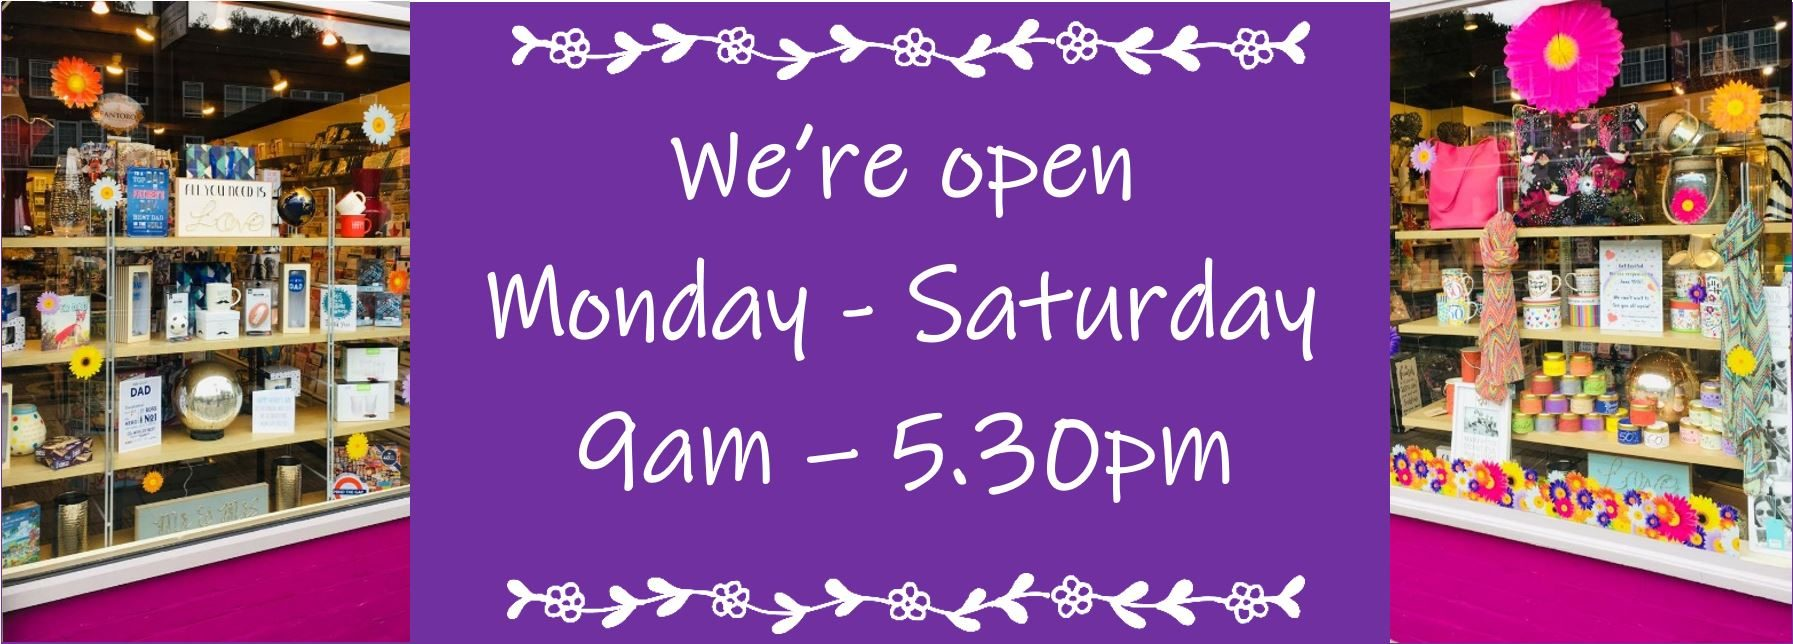 Back open 9am - 5.30pm